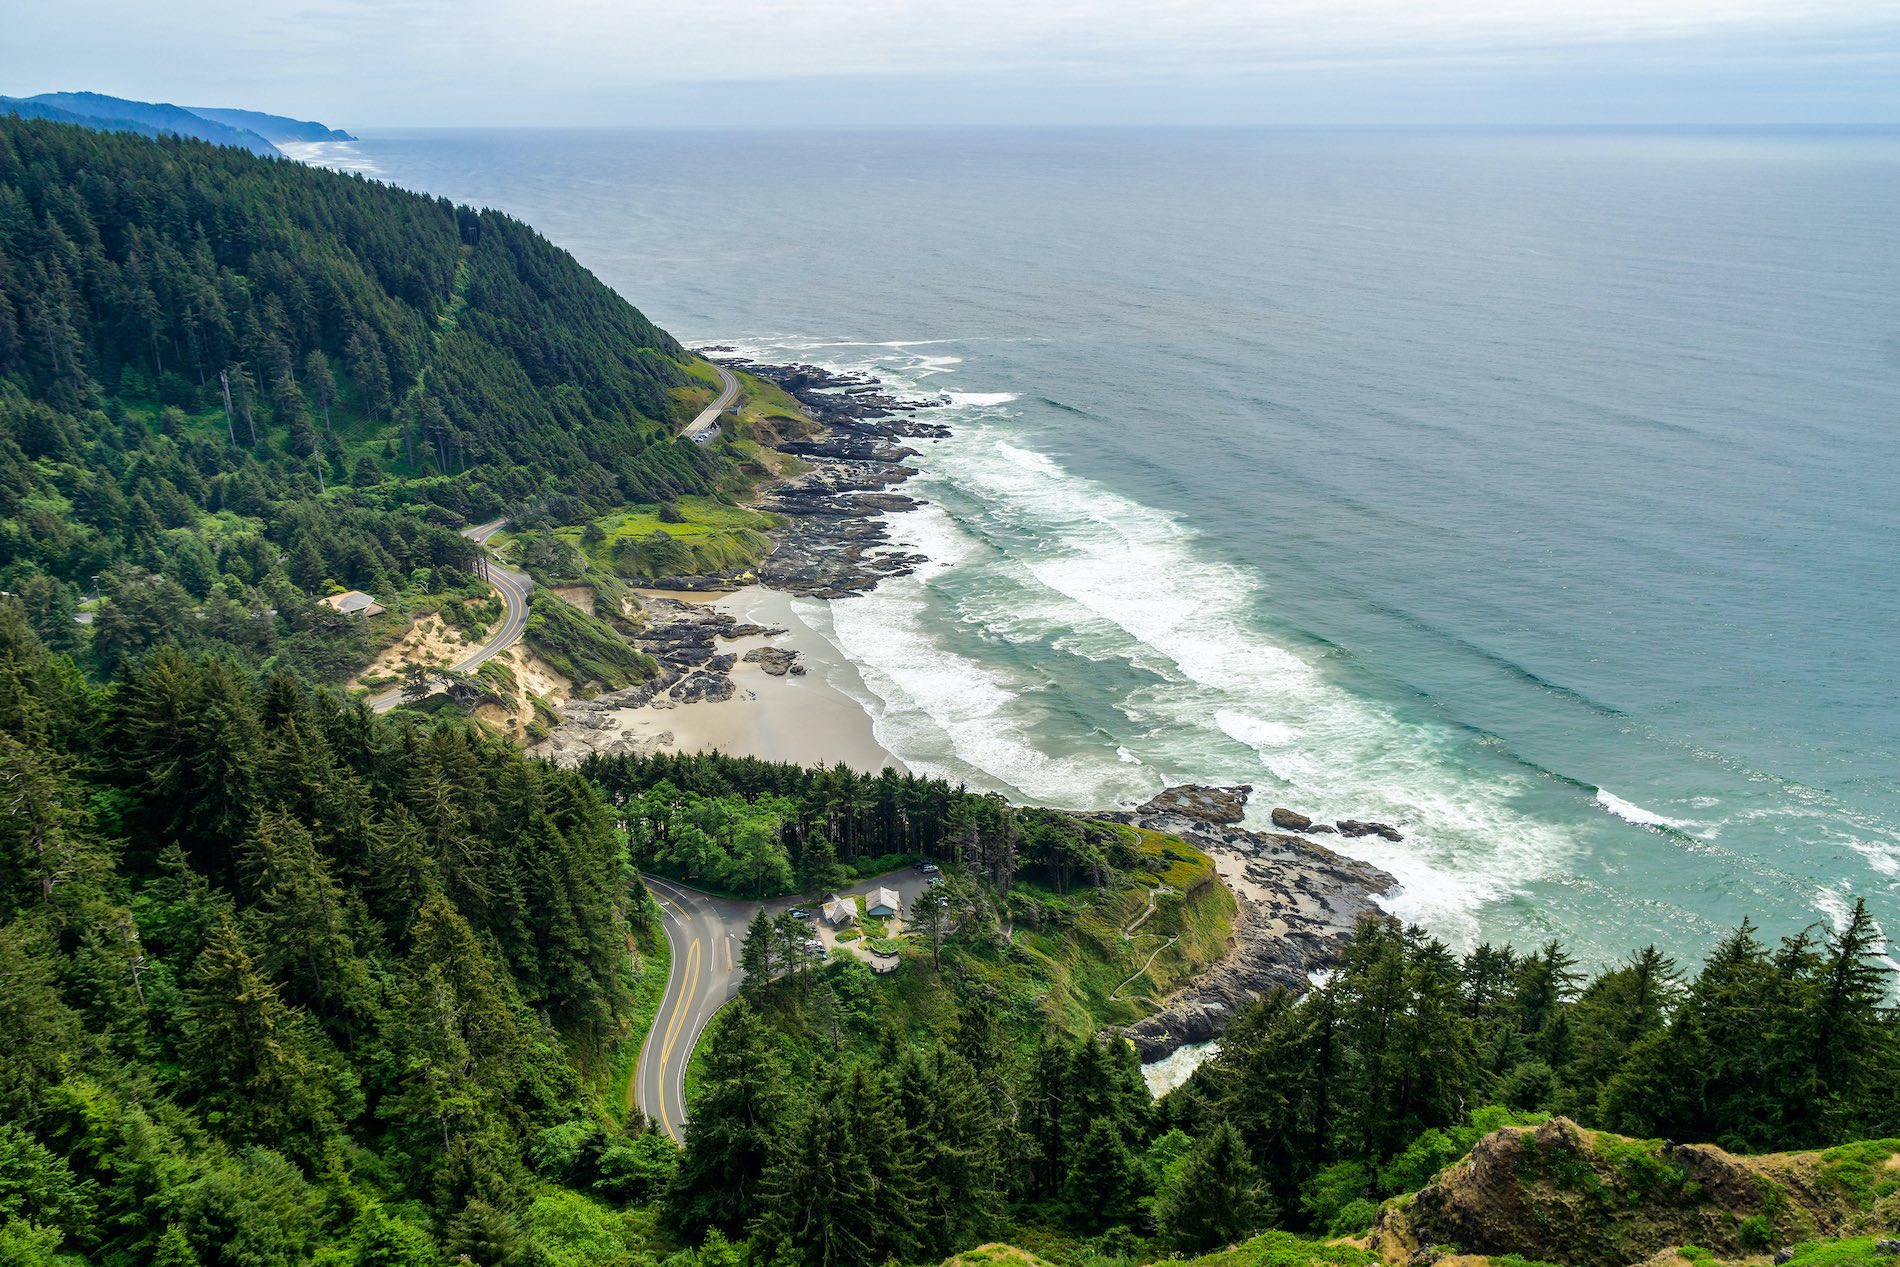 Cape Perpetua Scenic Overlook. Aerial view of the Cape Perpetua coastline from the Devils Churn to the Cooks Chasm, Yachats, Oregon coast, USA.